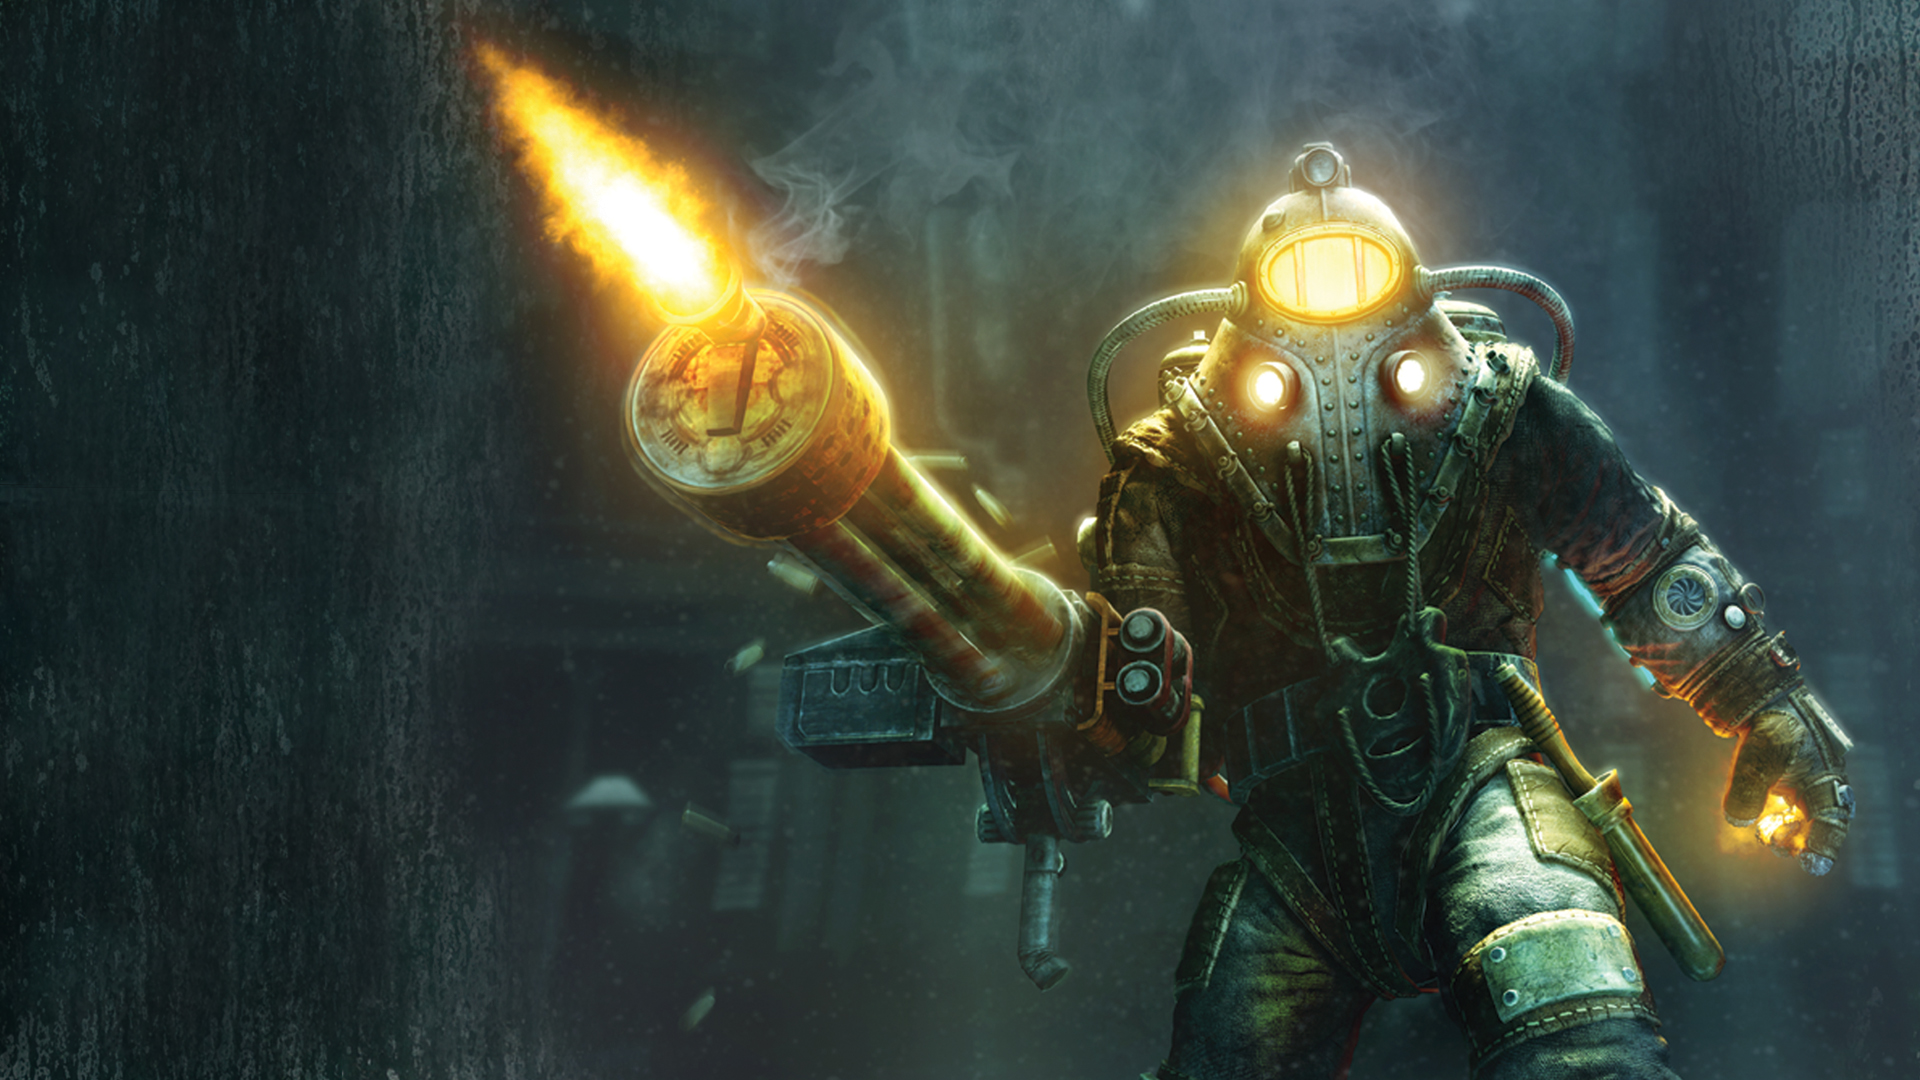 bioshock wallpaper picture 1920x1080